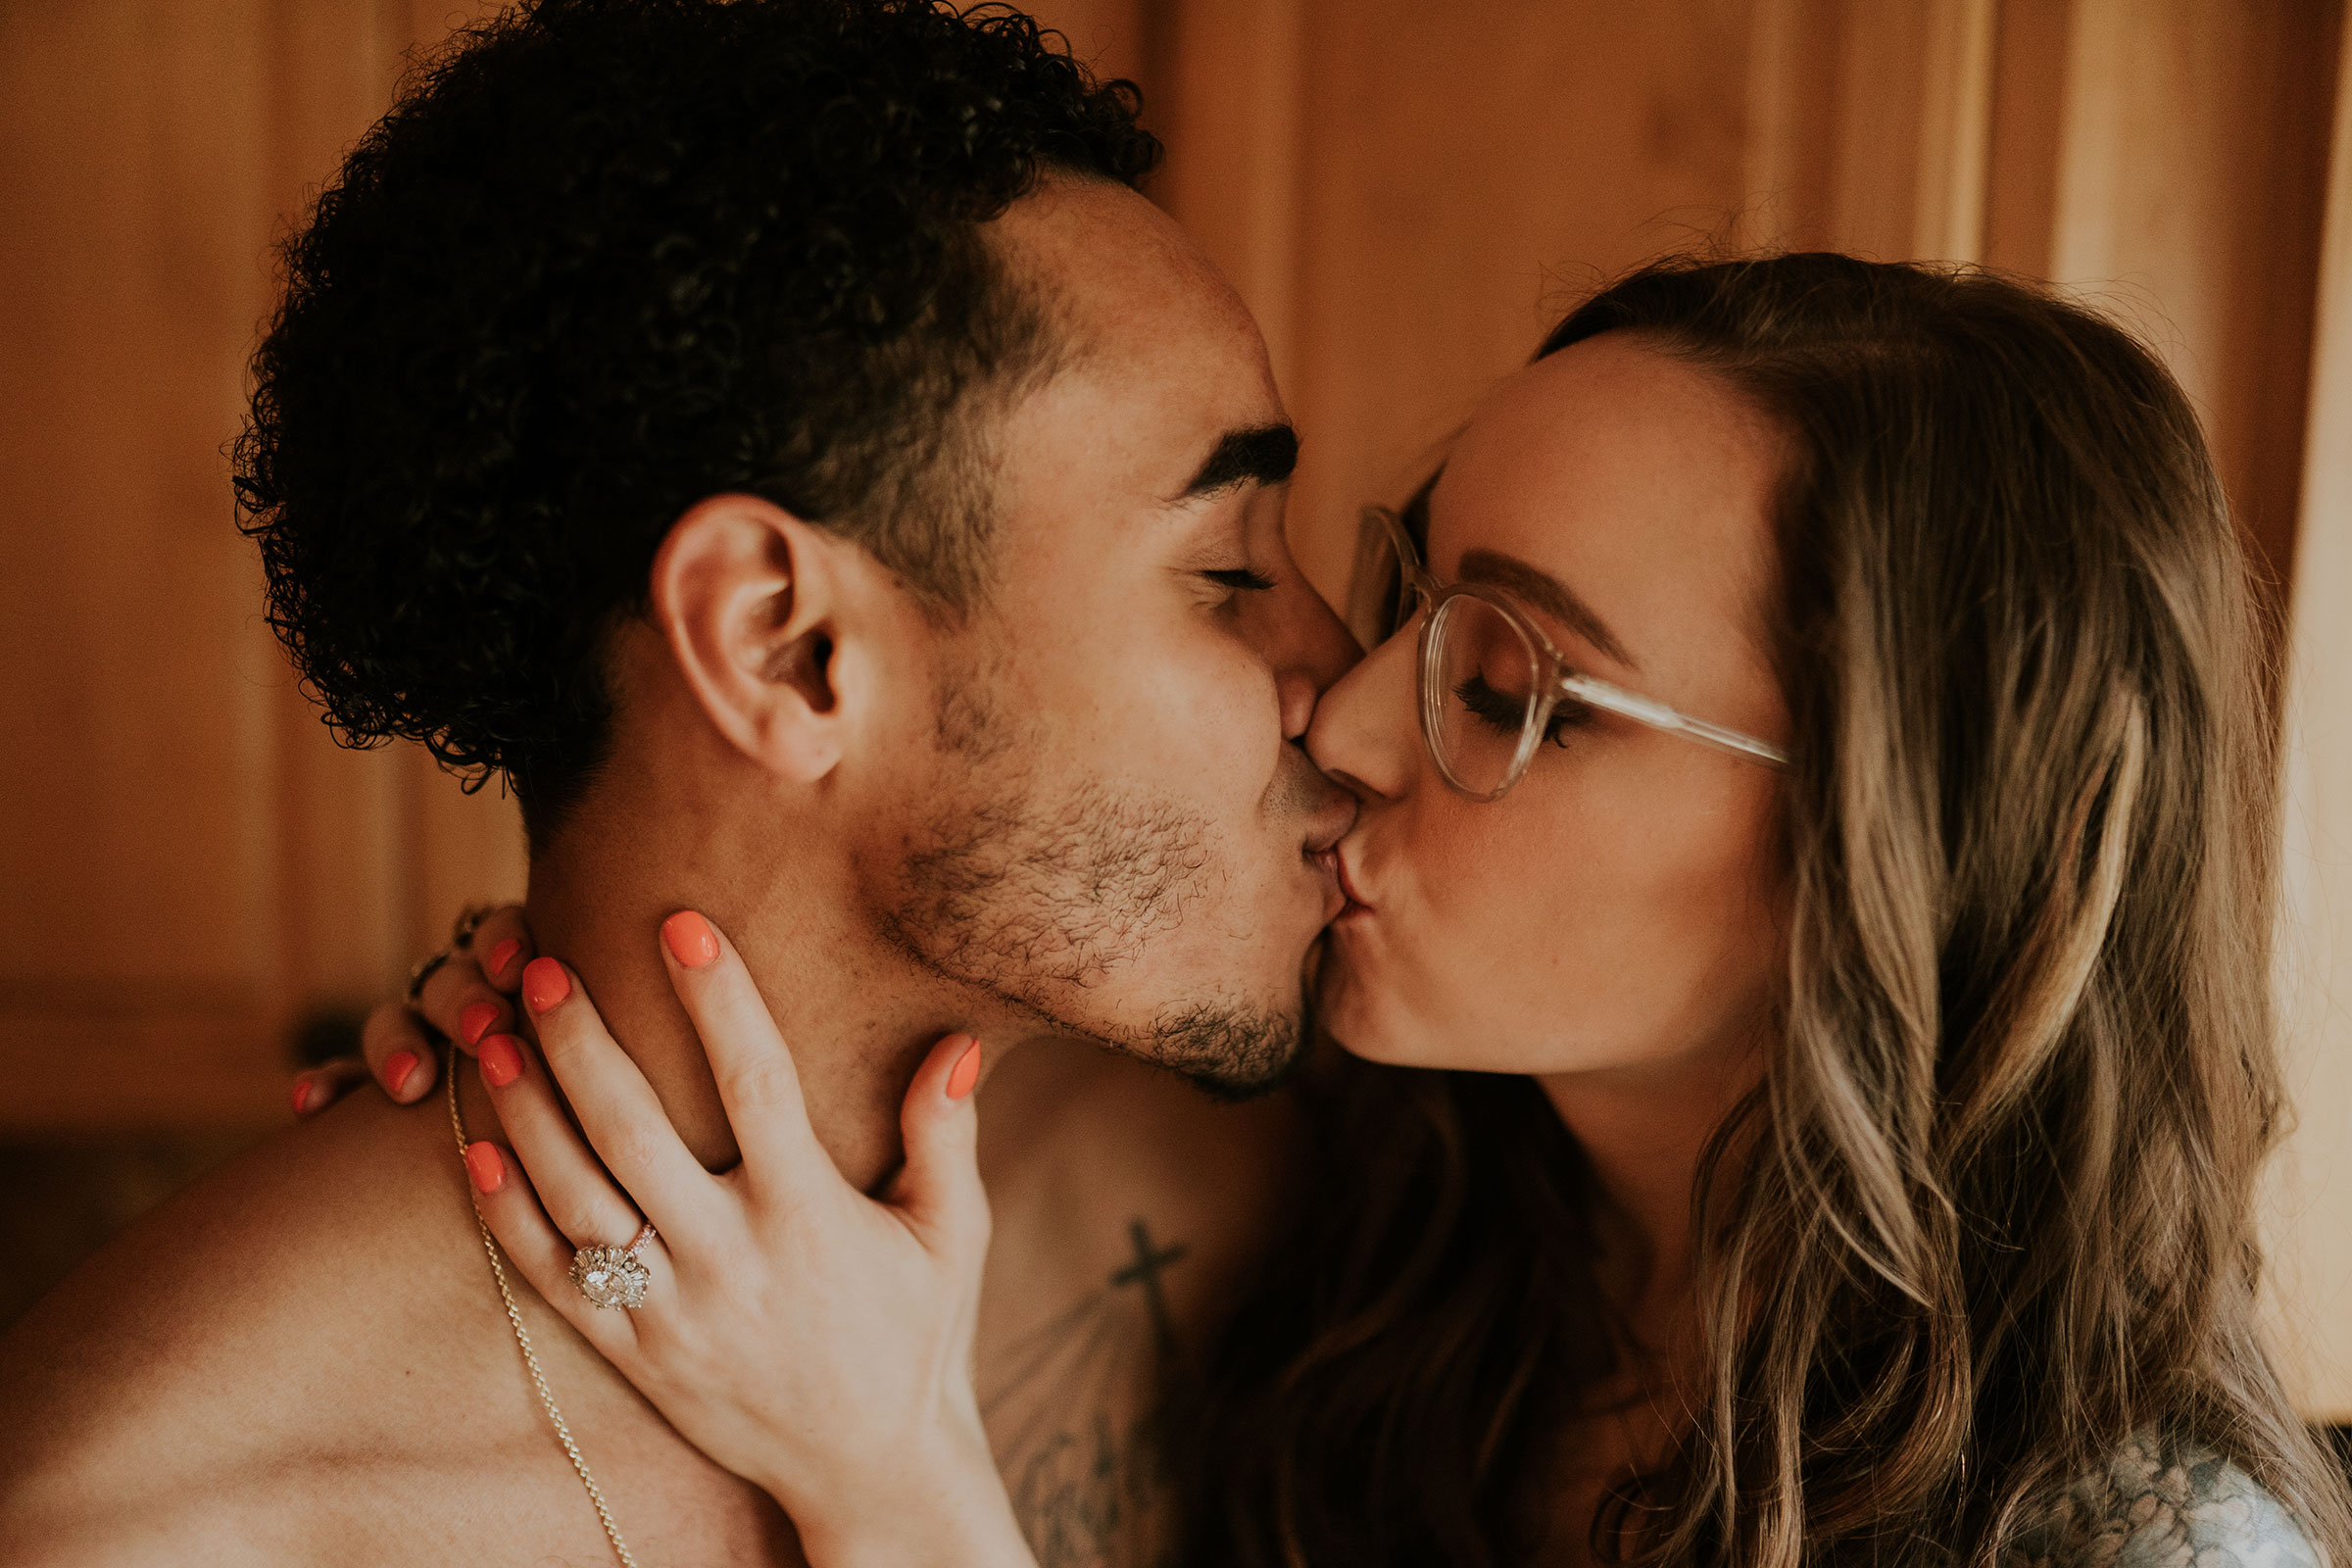 couple-kissing-in-kitchen-engagement-desmoines-iowa-raelyn-ramey-photography.jpg